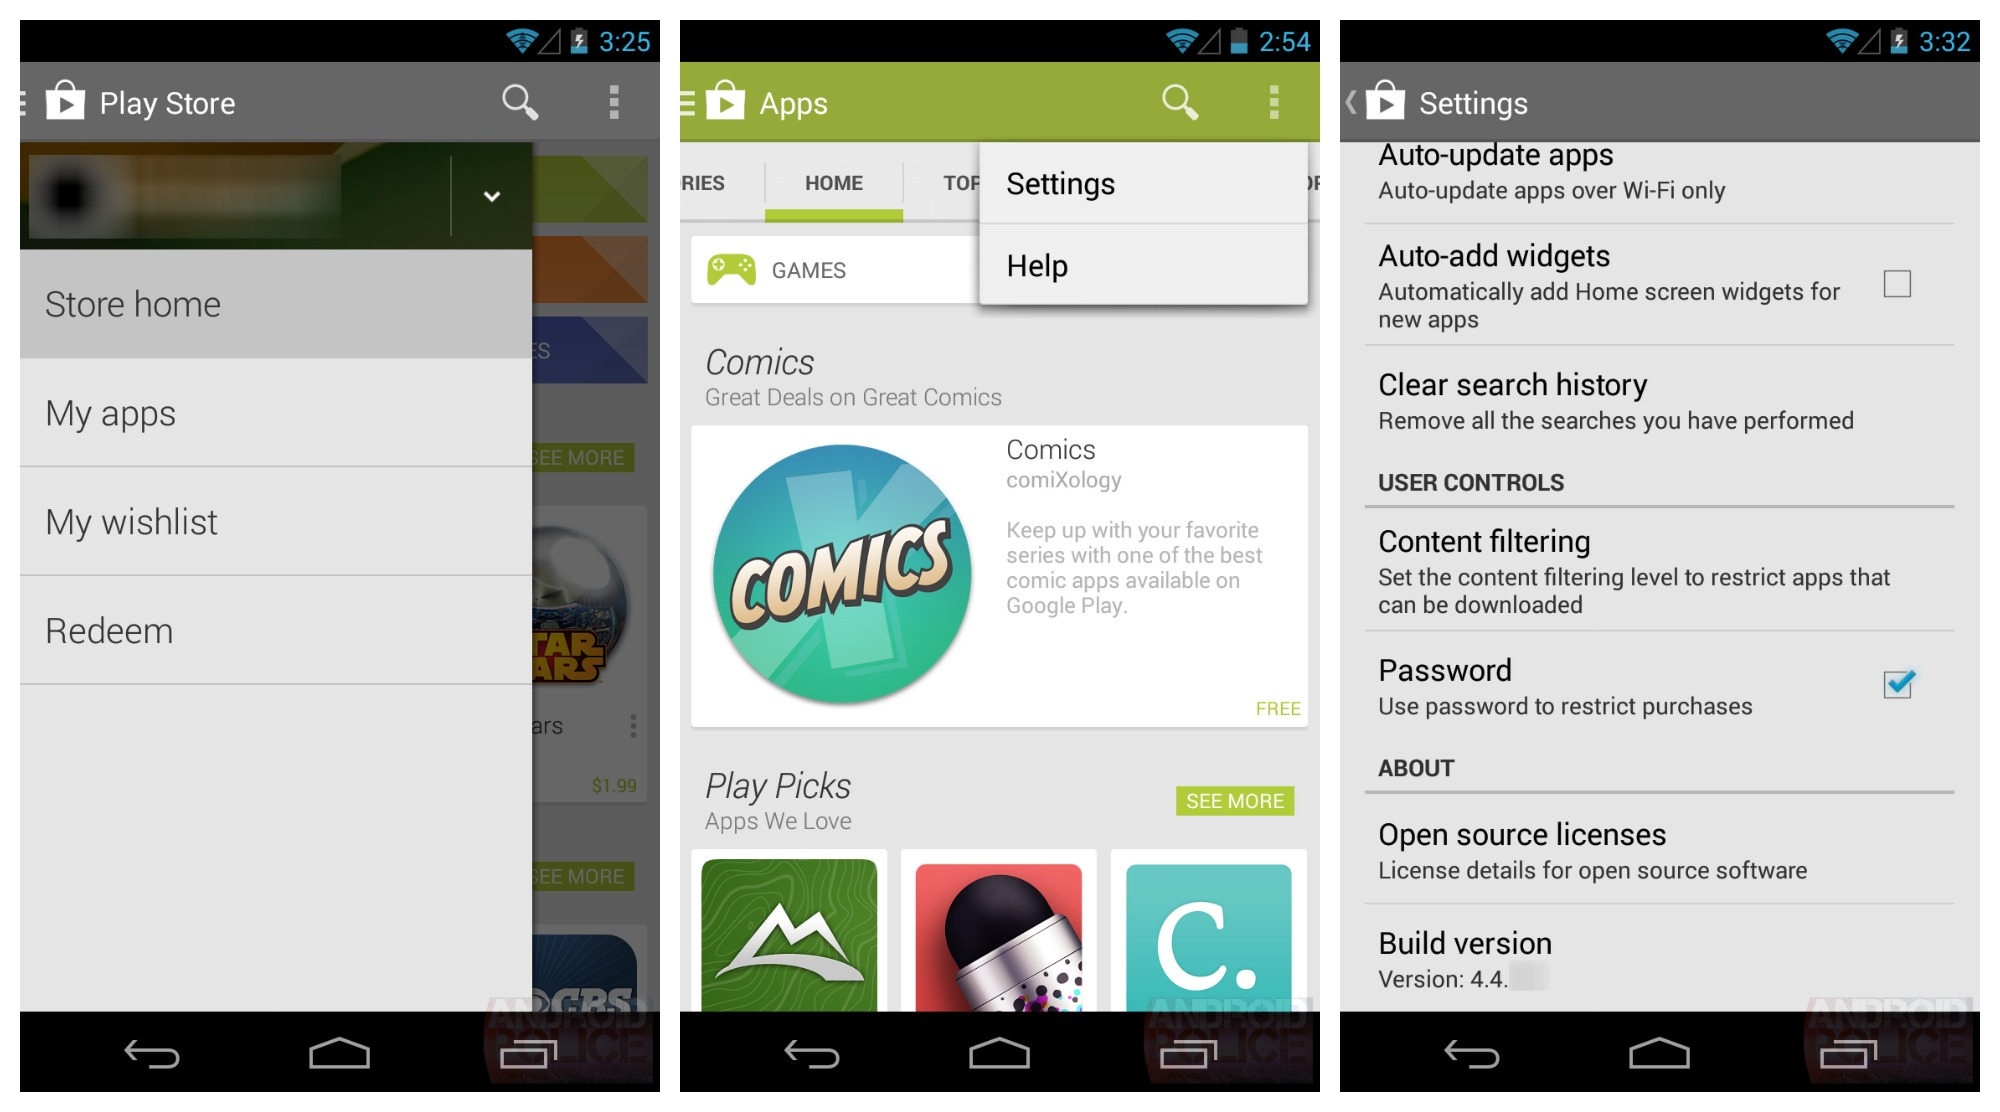 Android Apps On Google Play: New Google Play Store 4.4 Leaked, Currently Being Tested